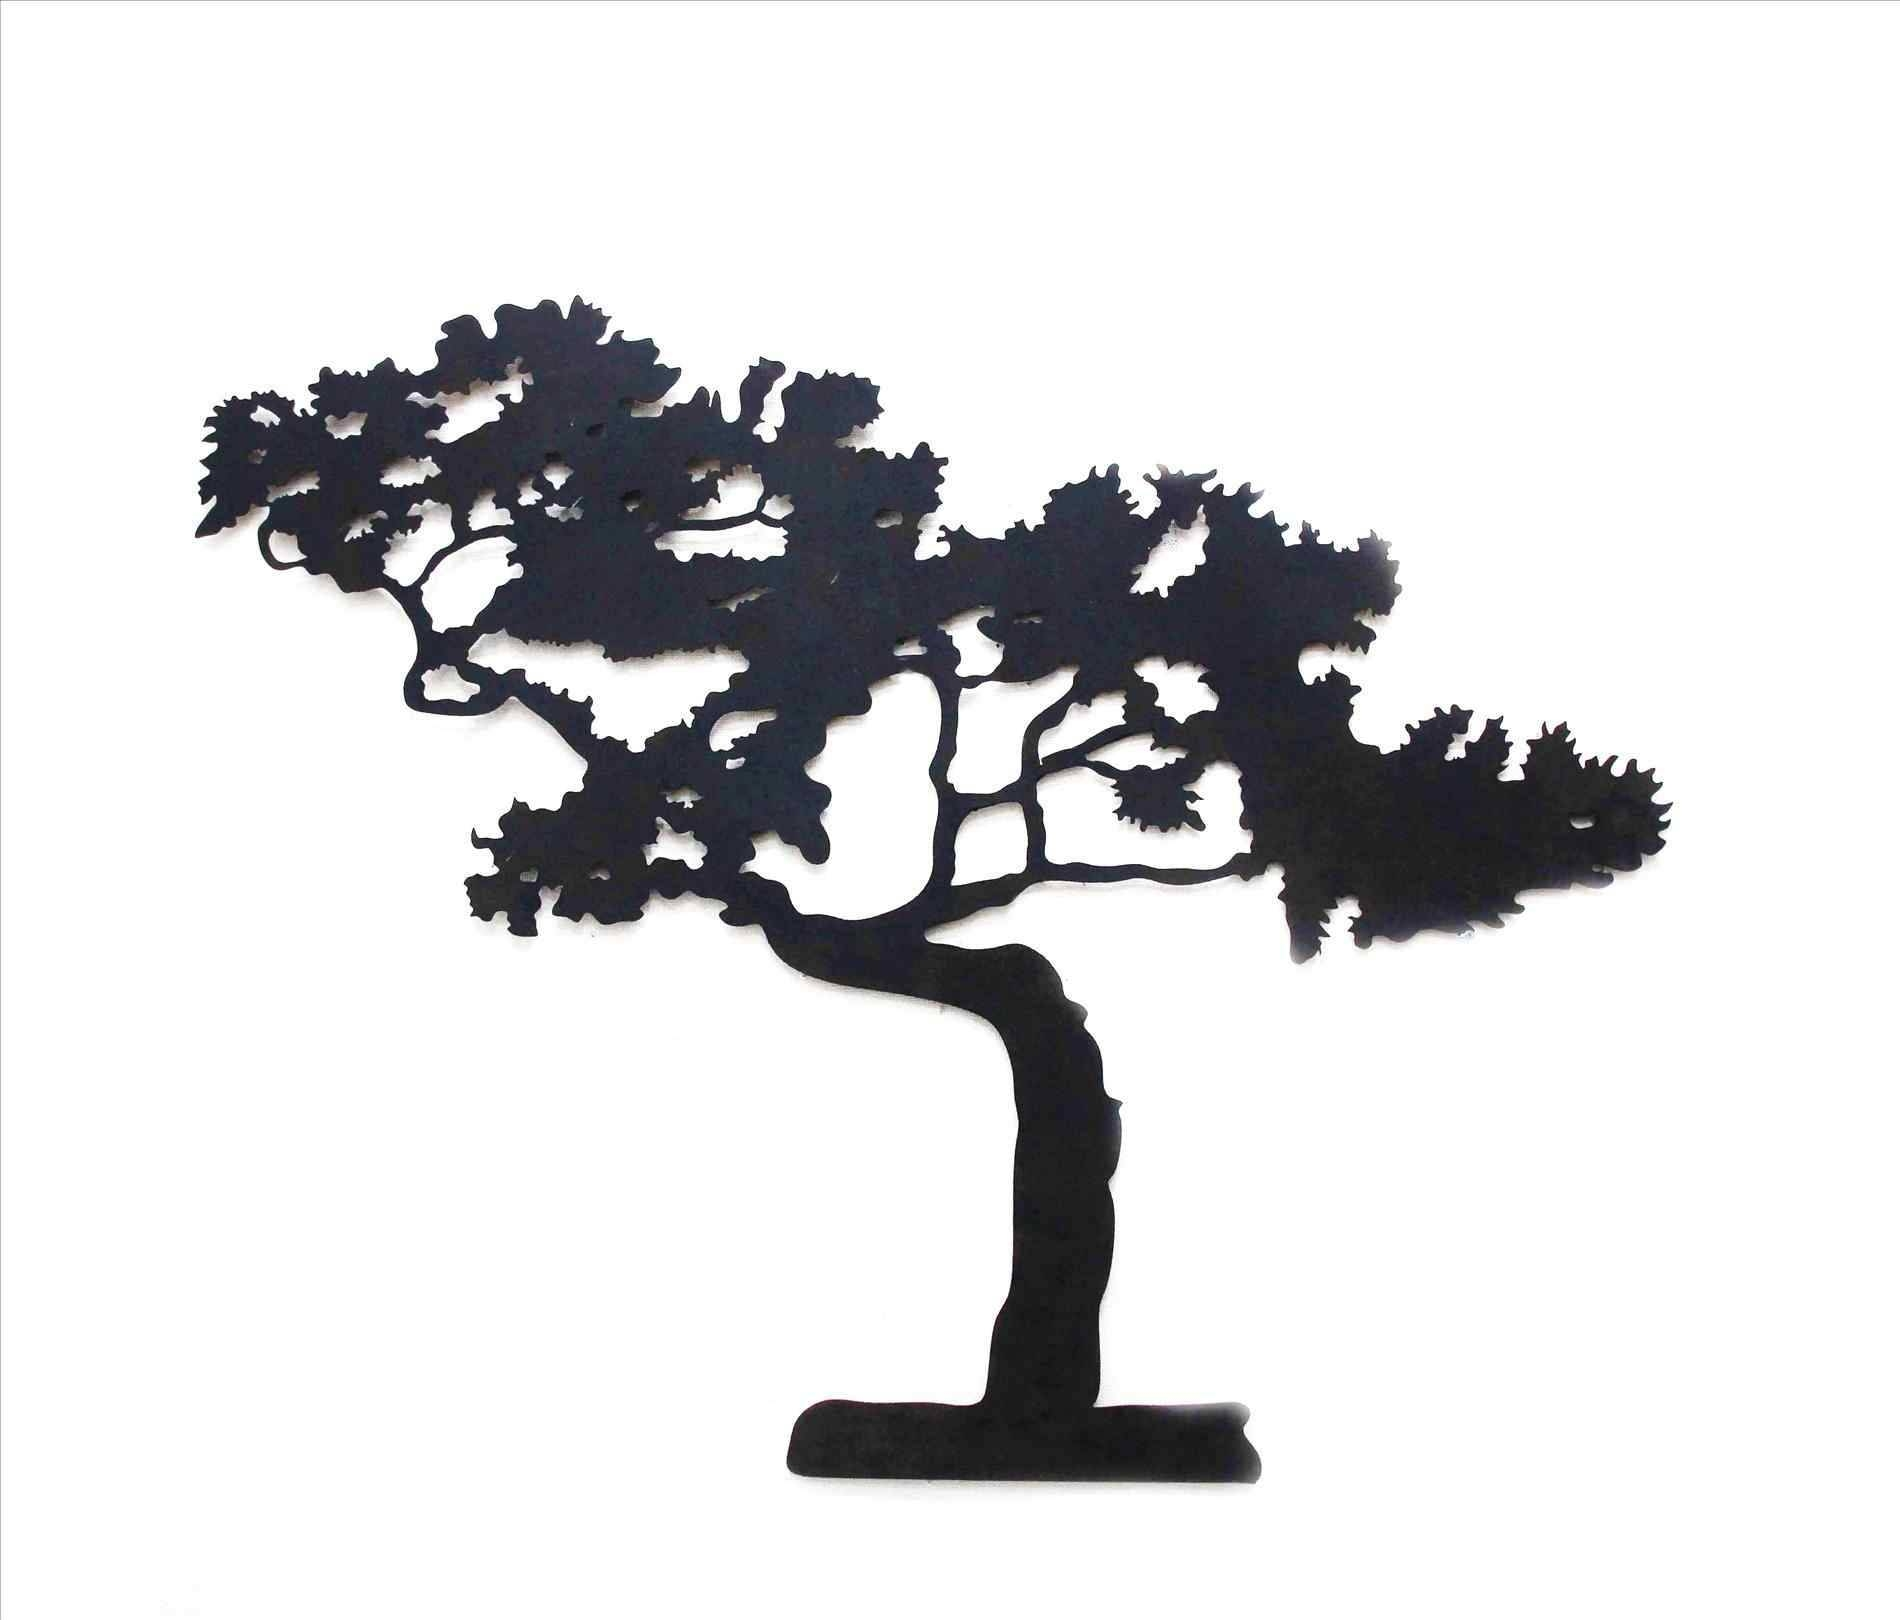 Metal Oak Tree Wall Art | Home Interior Decor Inside Most Current Oak Tree Wall Art (View 11 of 30)